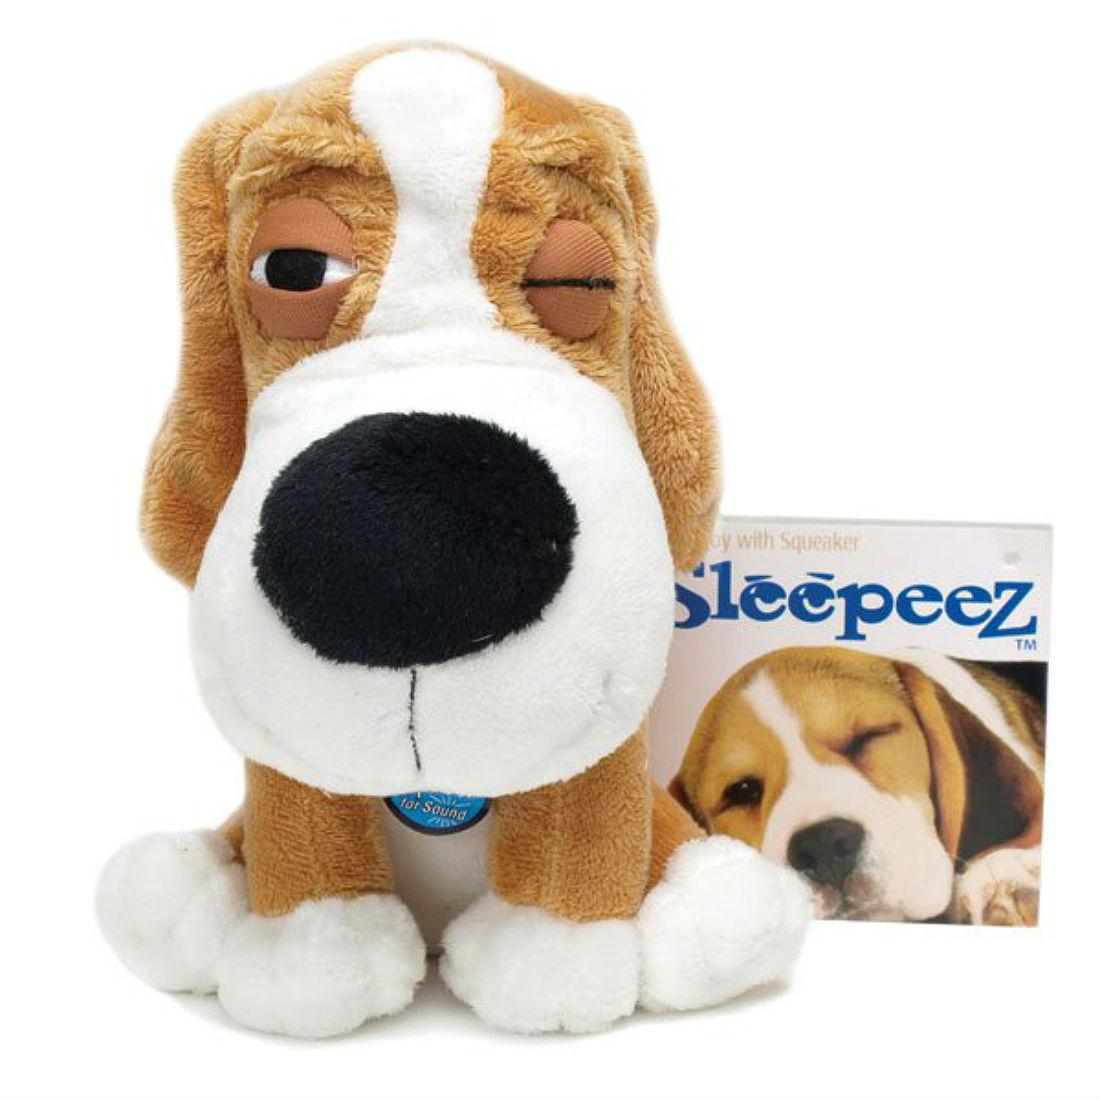 SleepeeZ Plush Dog Toy - Golden